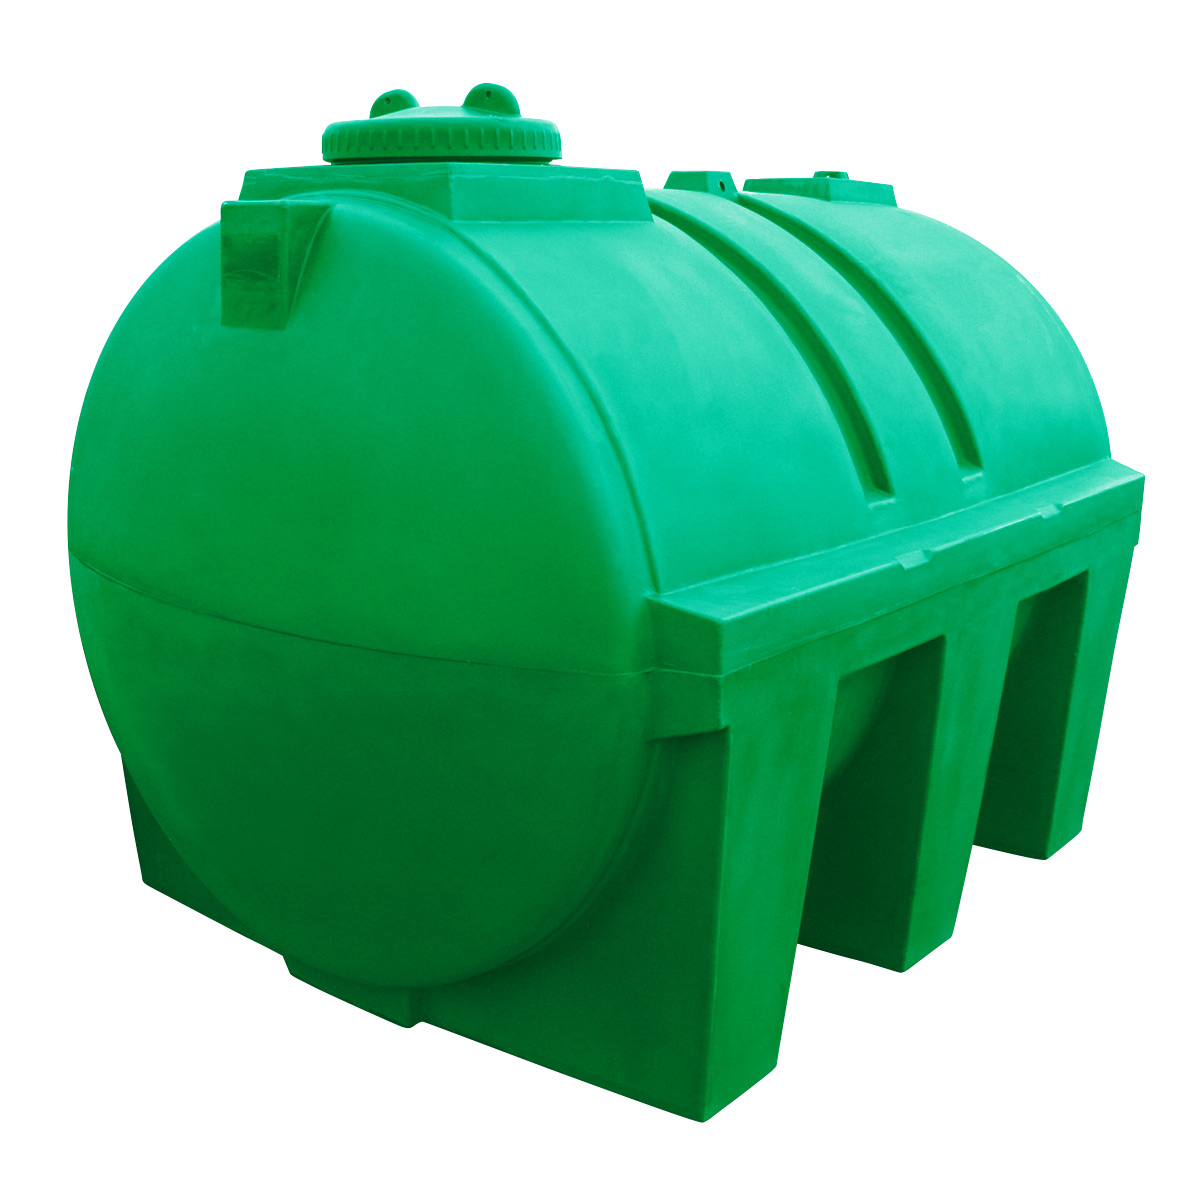 Monoblocktanks 4000 L